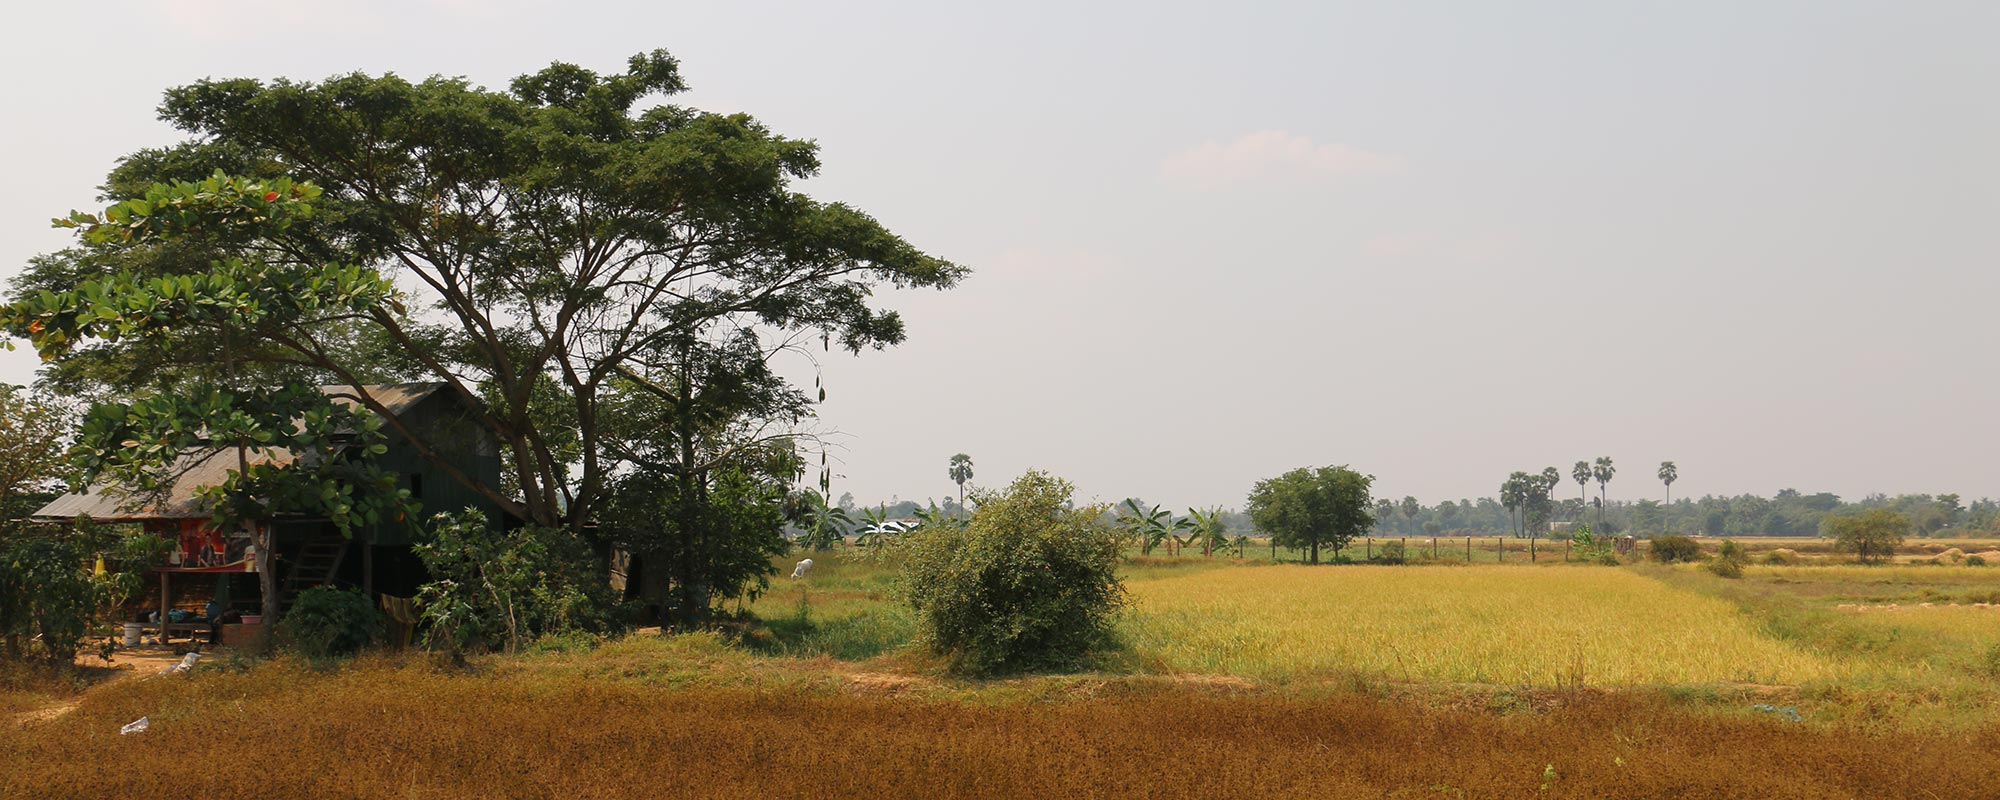 Explore Battambang Countryside